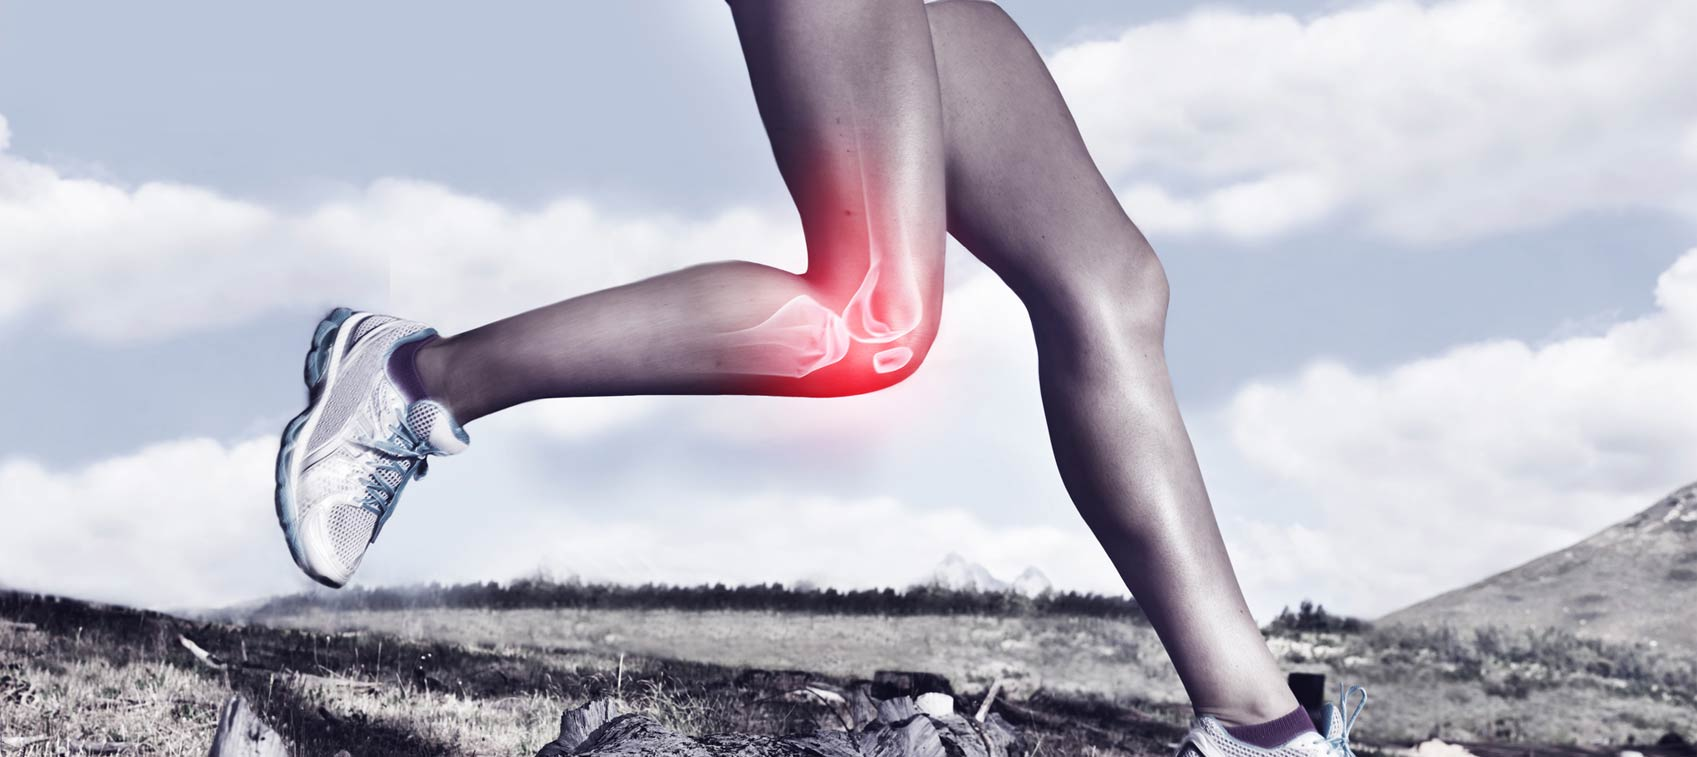 Useful tips to keep your joints healthy